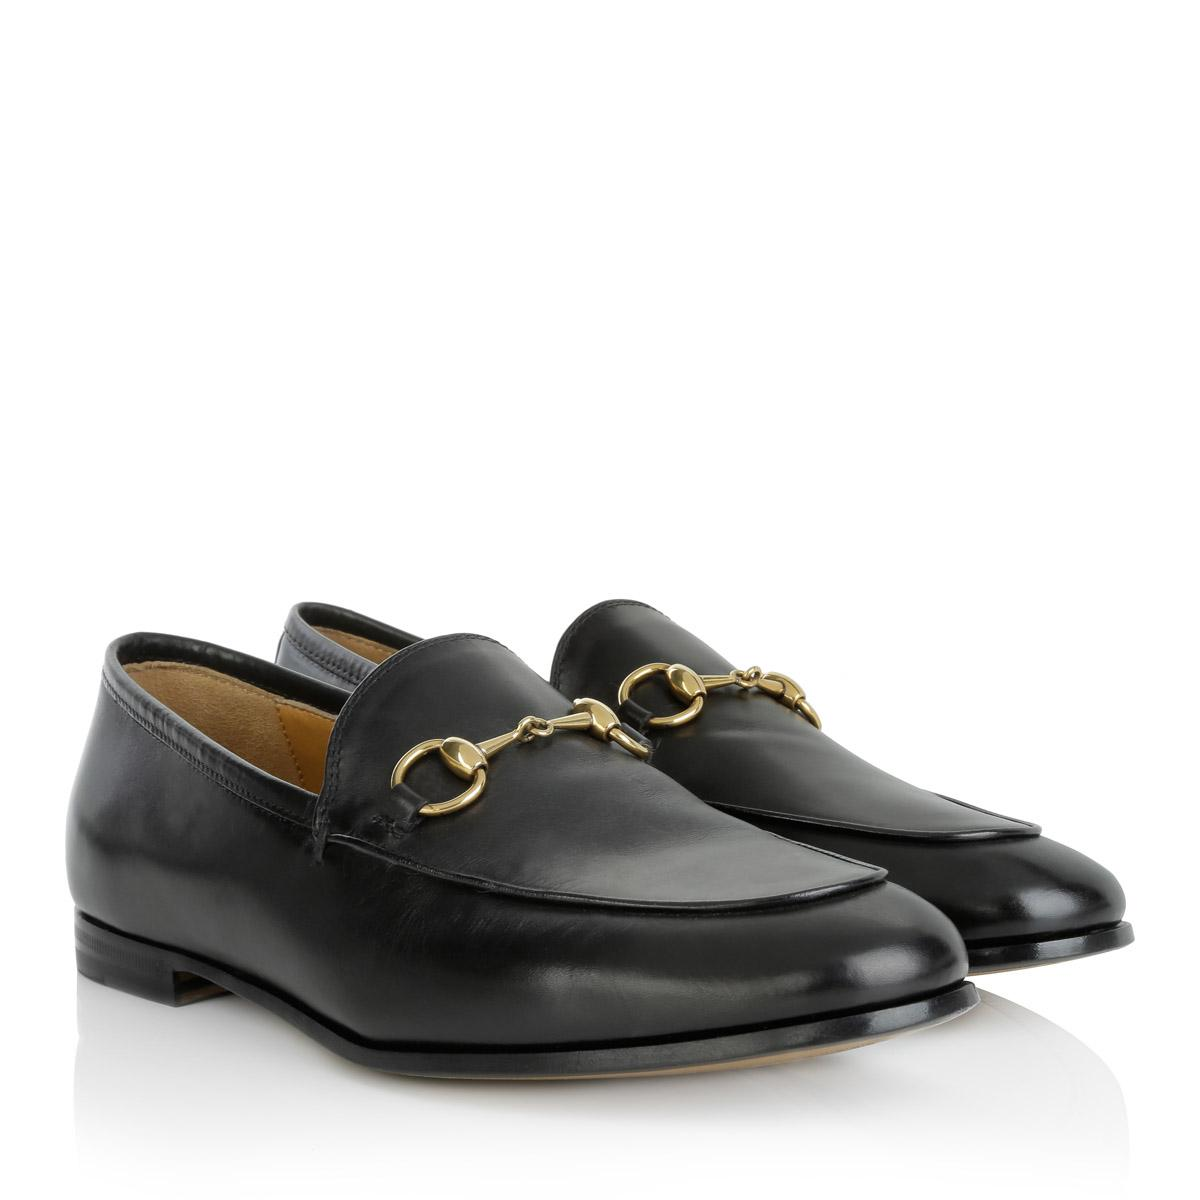 791e46459d4 Gucci Betis Glamour Loafer Nero in Black - Lyst